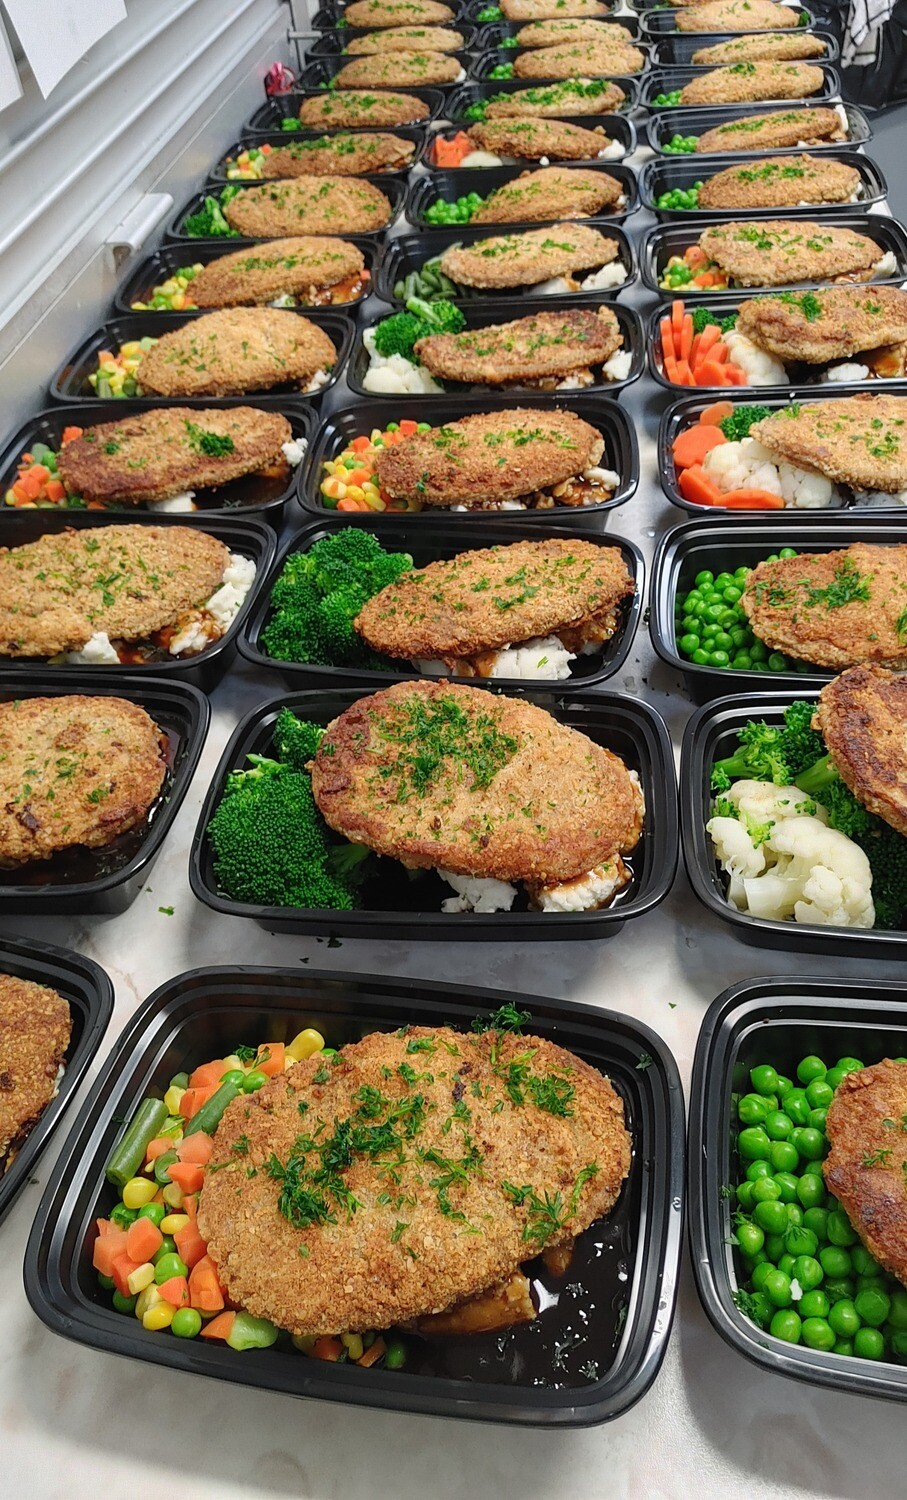 Veal Cutlet with Mashed Potatoes, Vegetables & Gravy